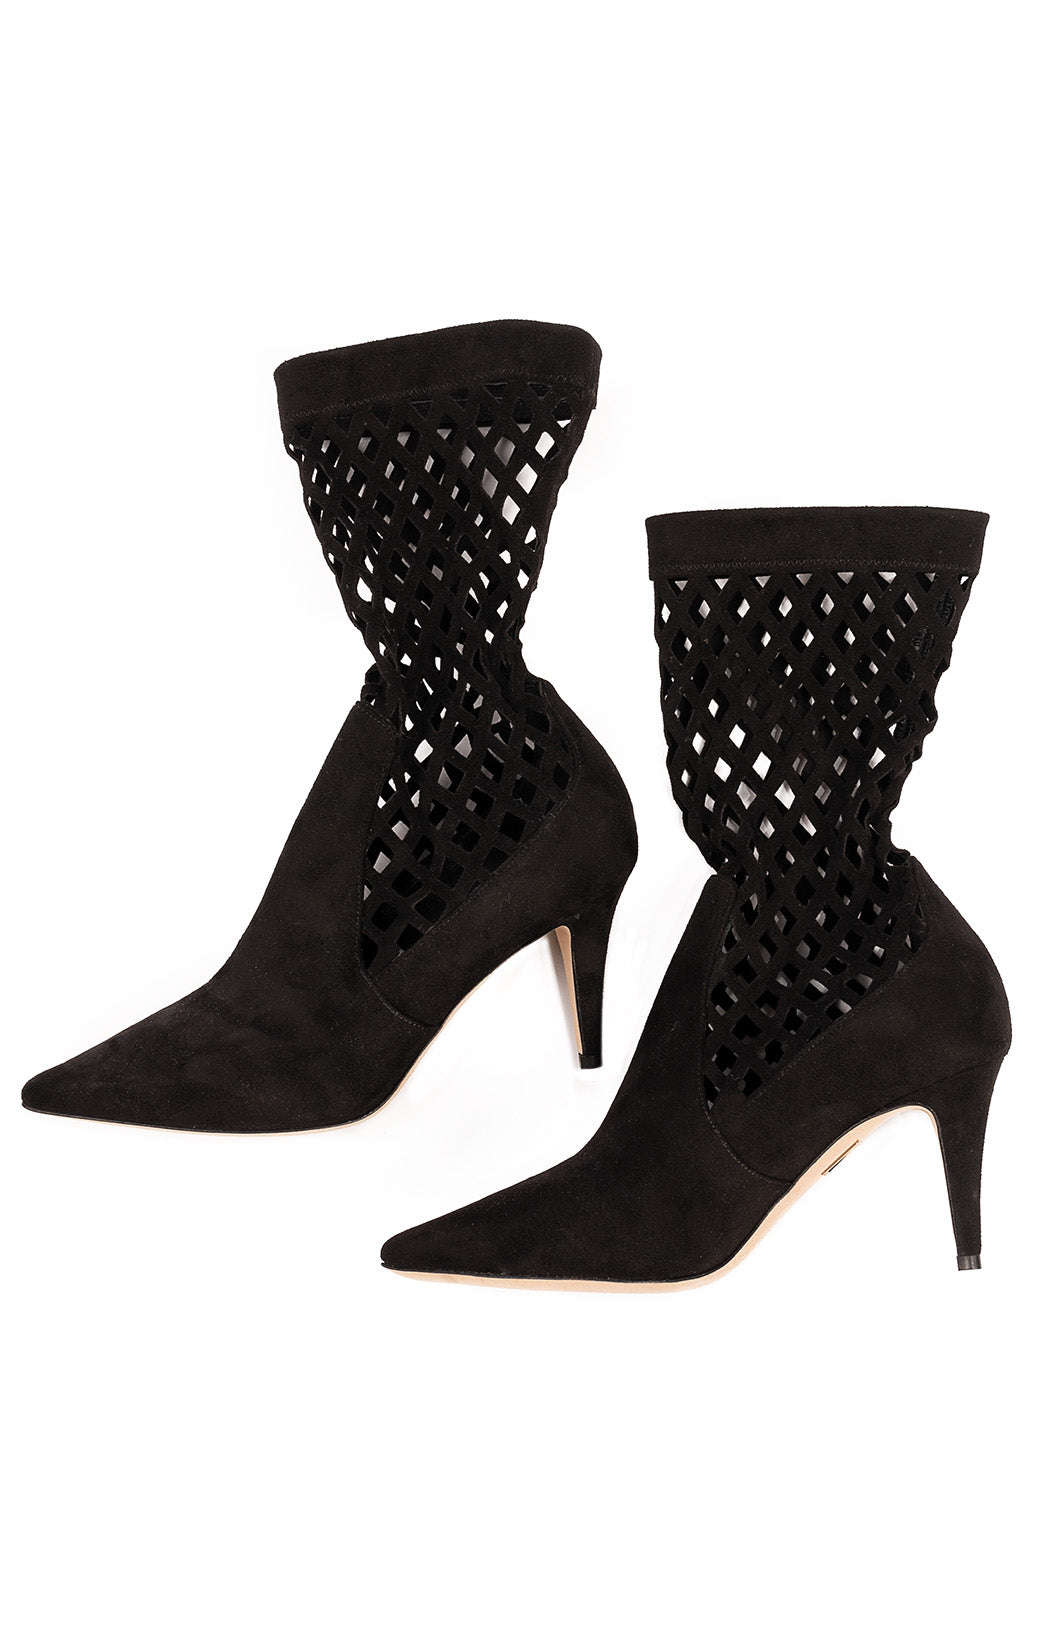 Black suede mid calf booty with open criss cross design